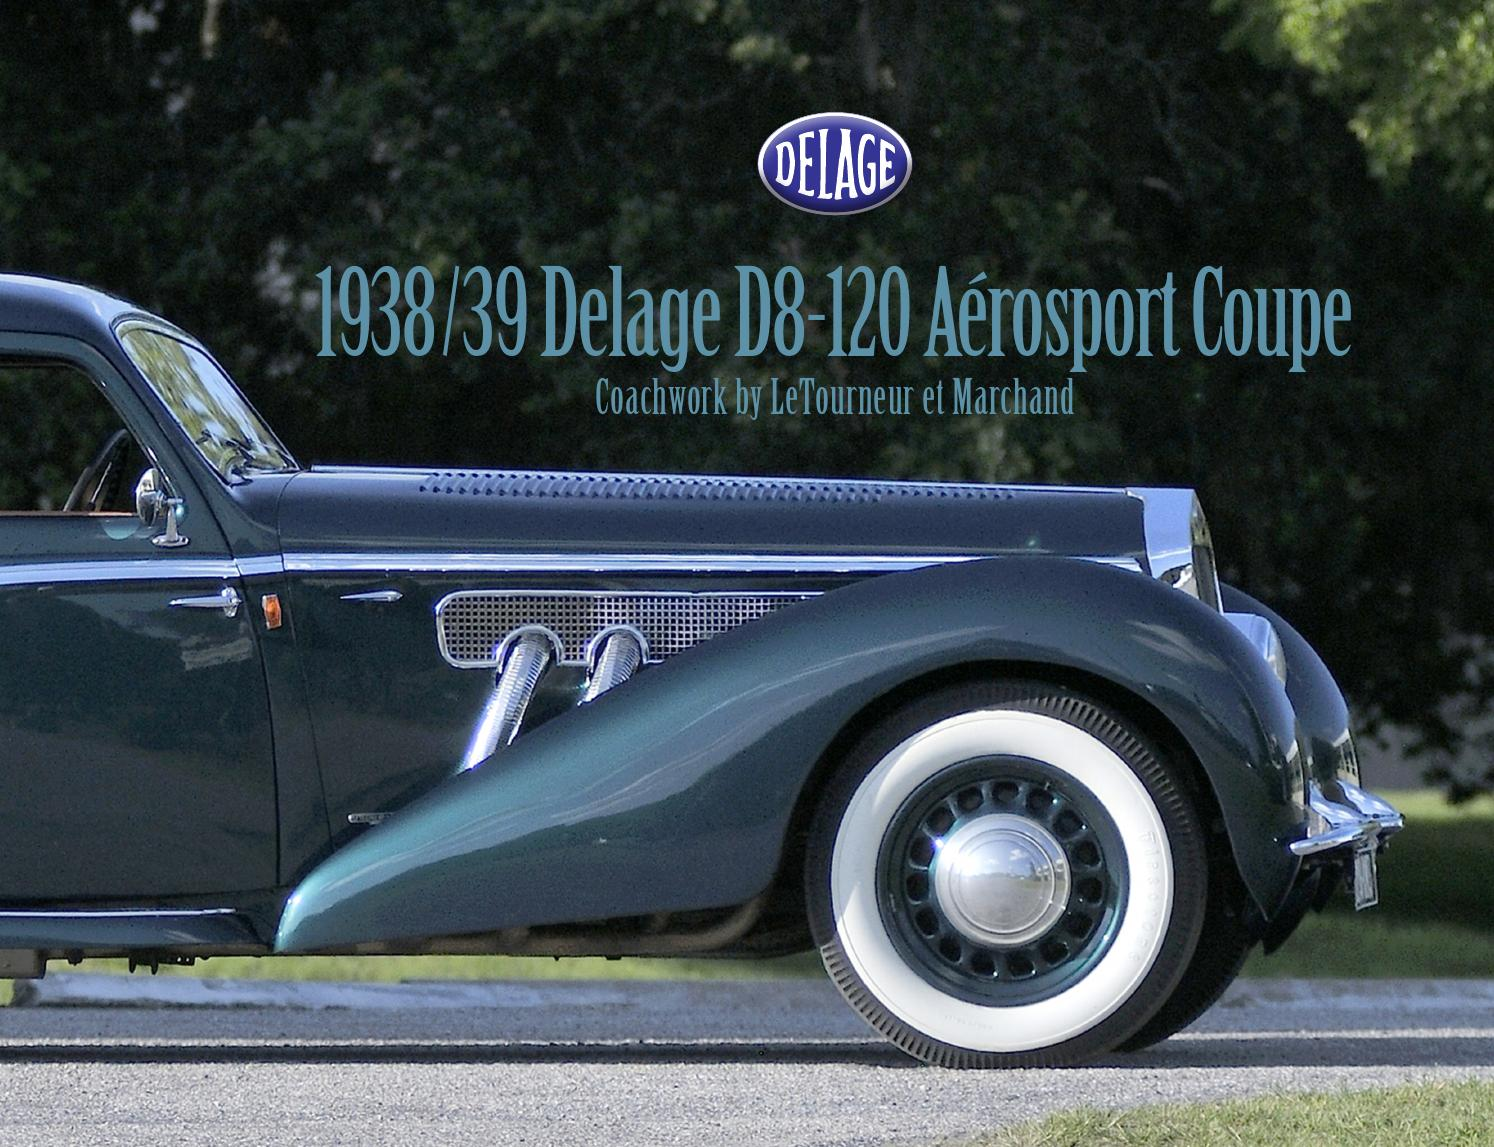 1938 39 delage d8 120 a rosport coupe by mecum auctions issuu. Black Bedroom Furniture Sets. Home Design Ideas